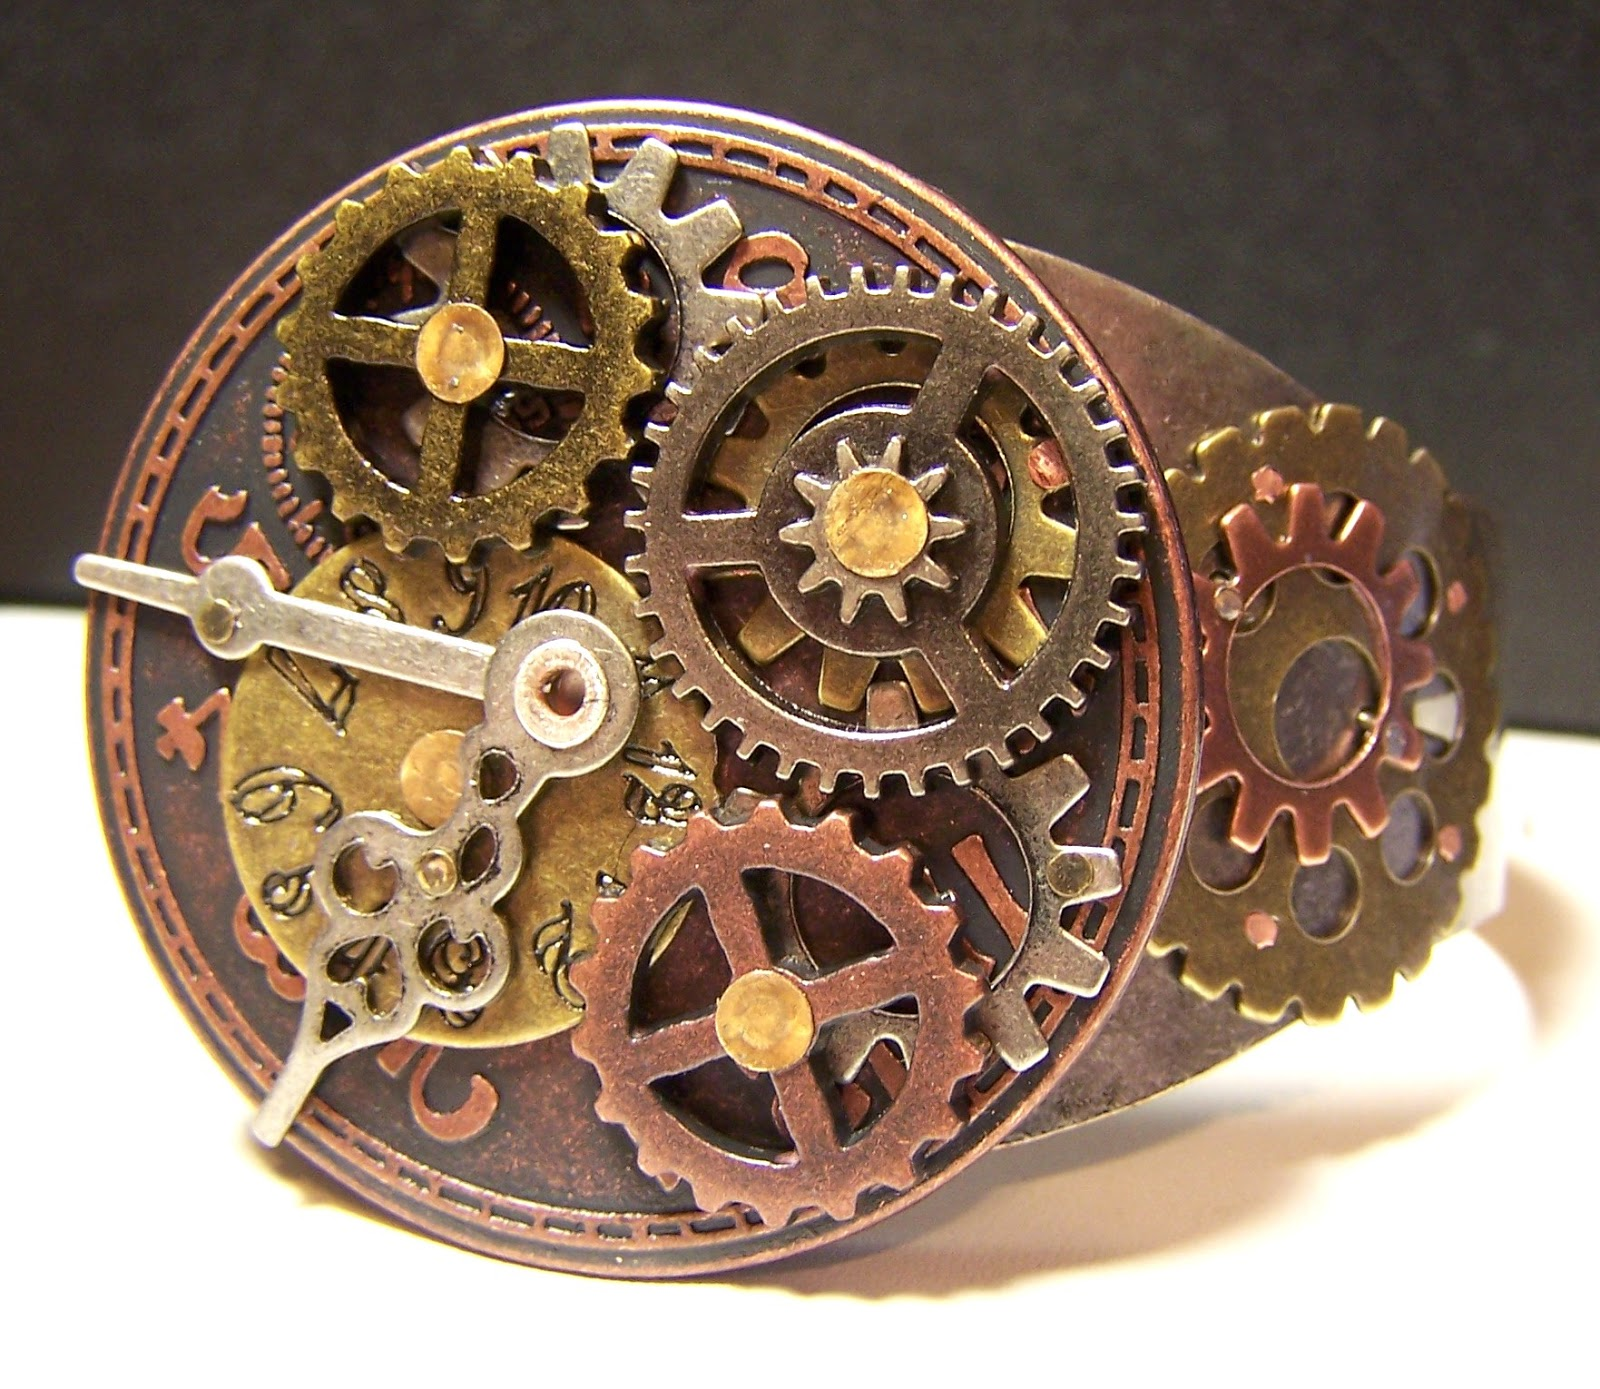 Zen Creations Jewelry Gears Clocks And Gemstones